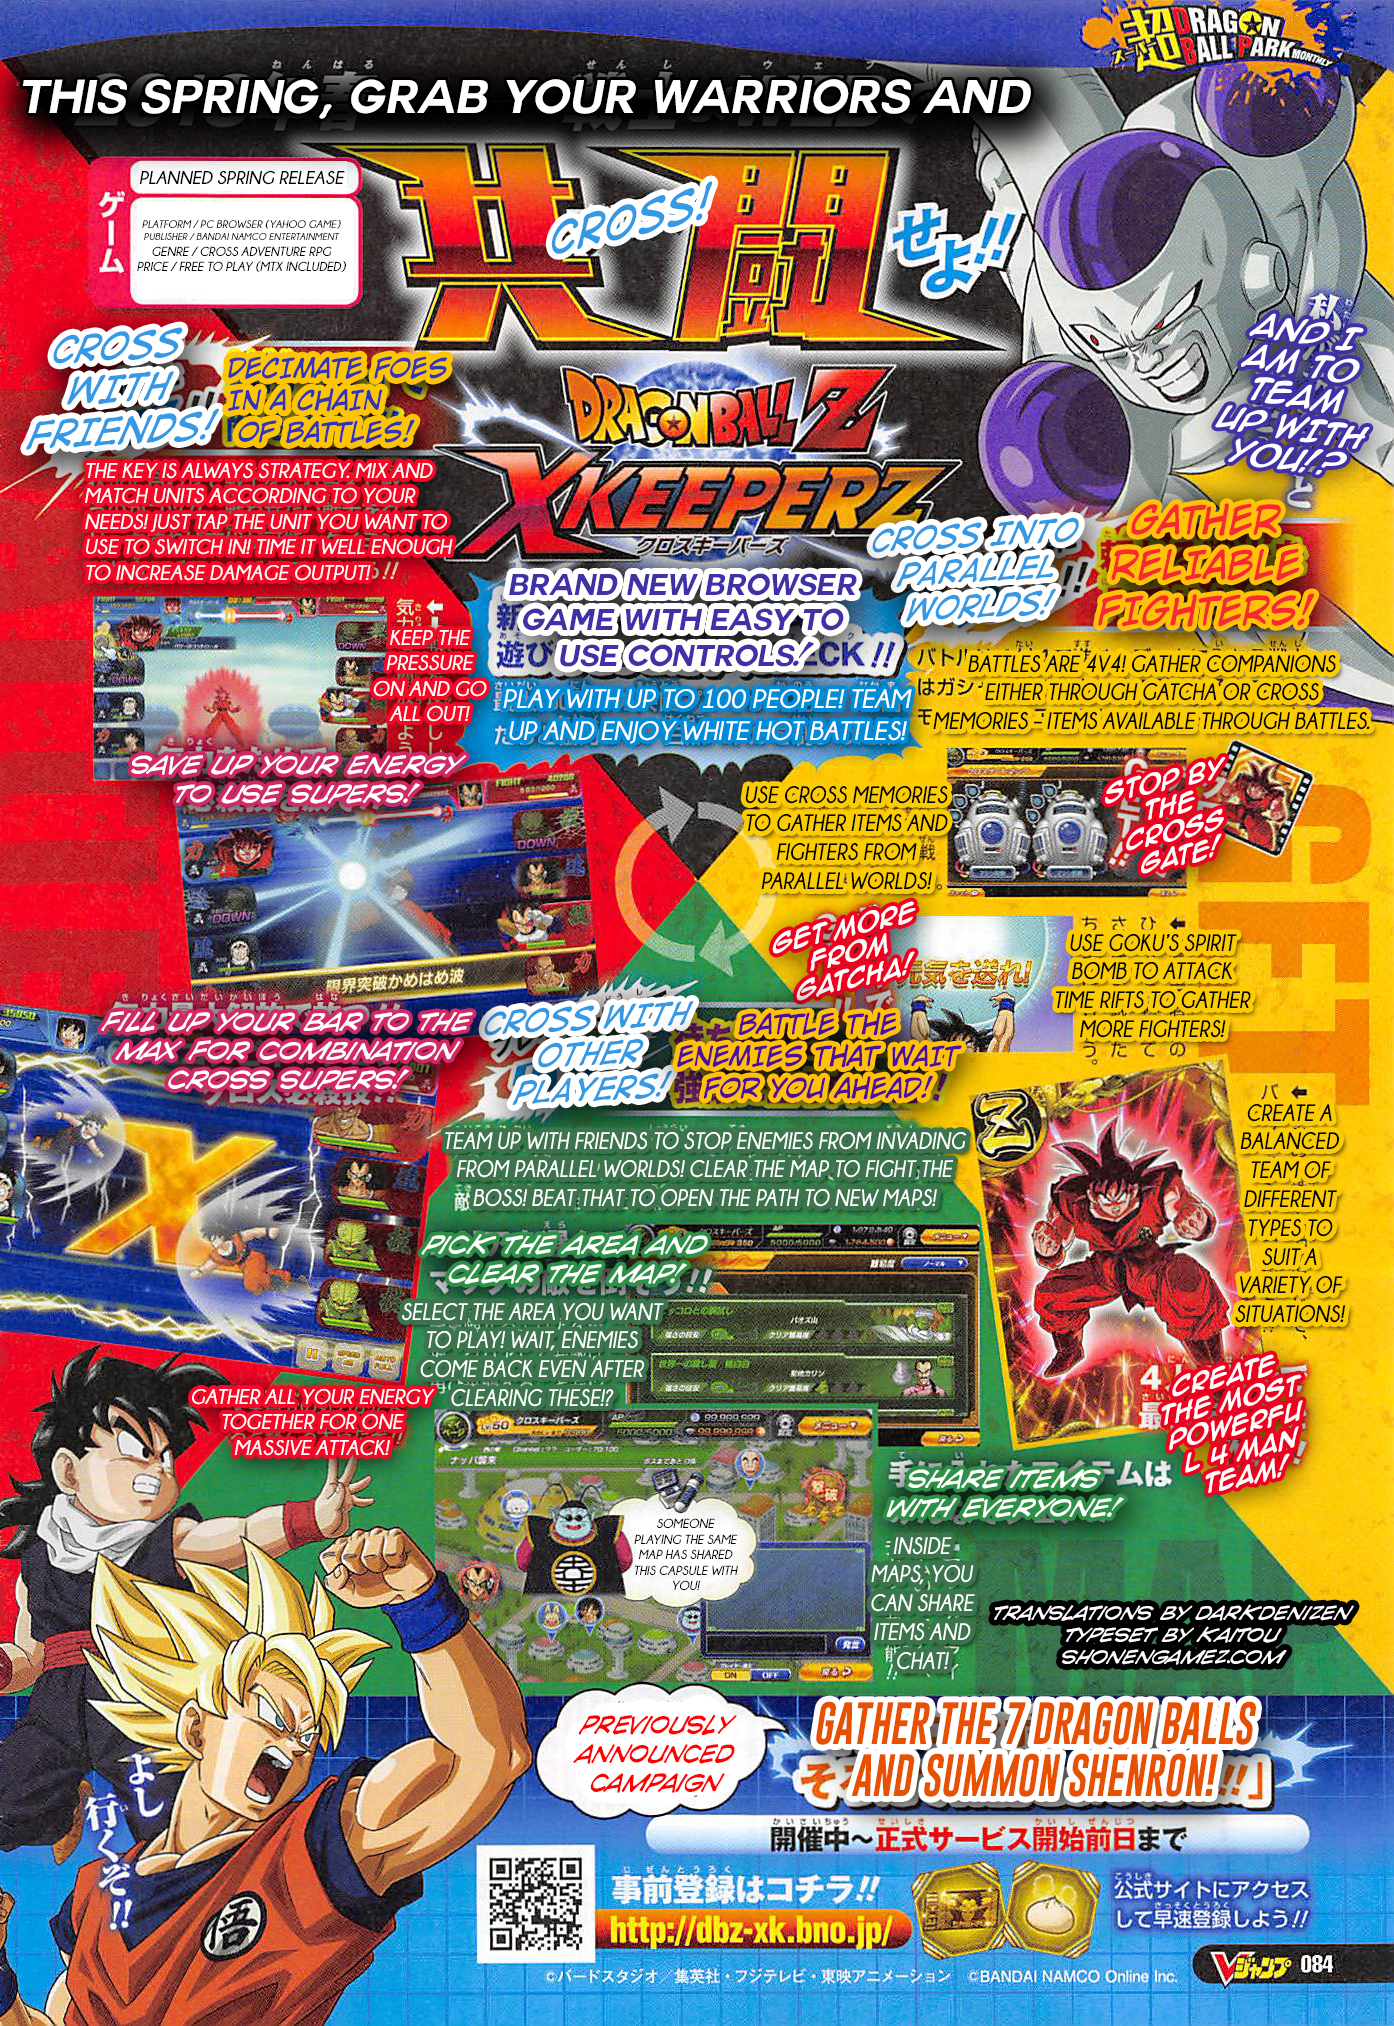 Dragon Ball Z Xkeeperz V Jump Scan Reveals Details On Cross